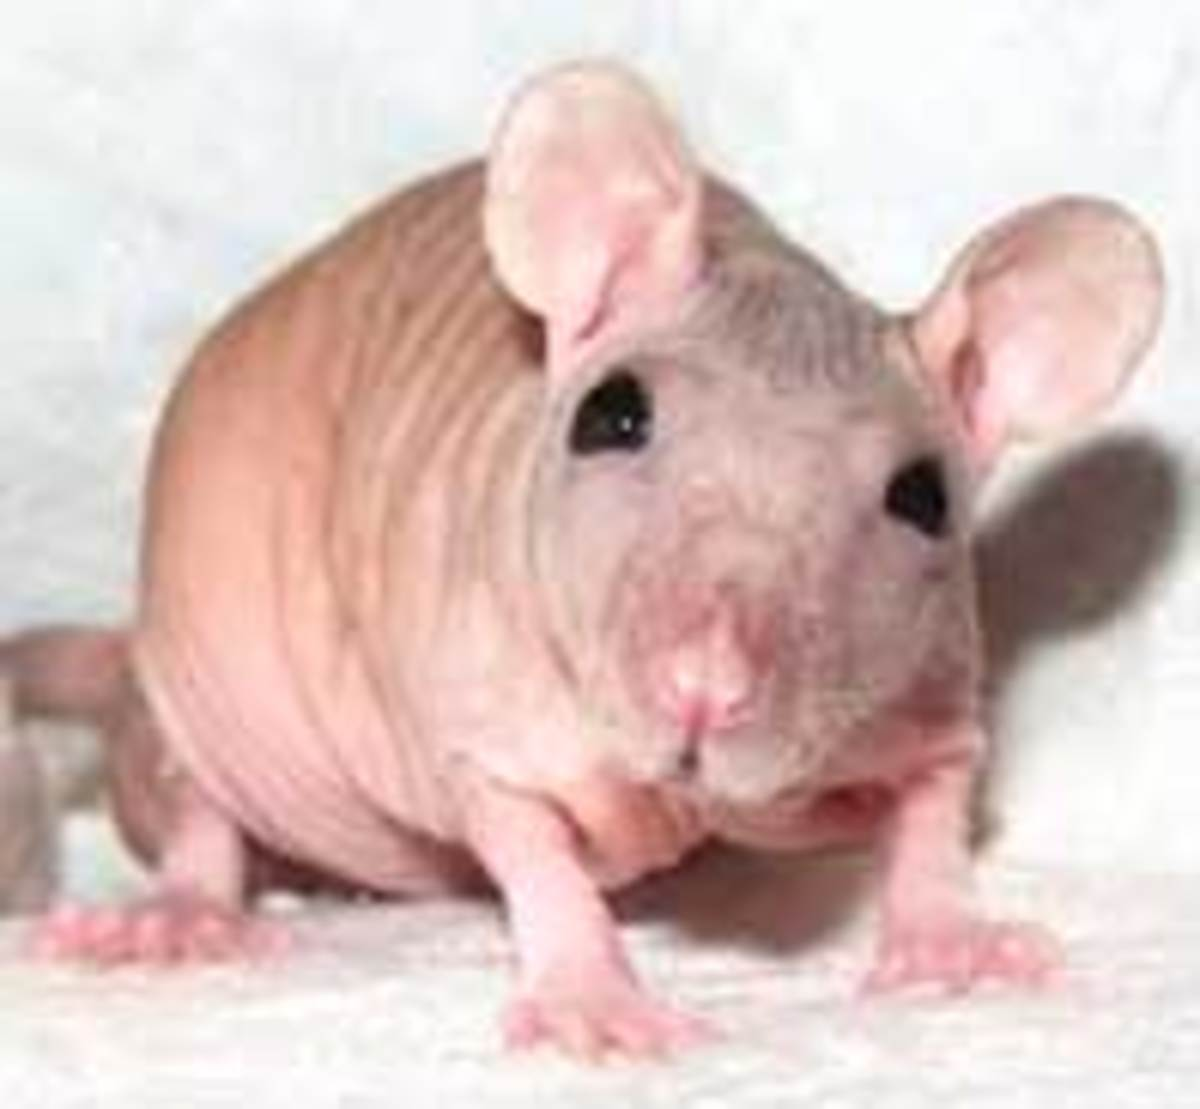 Hairless rats can make for endearing pets to some while others think they have a pretty big 'ick' factor going.